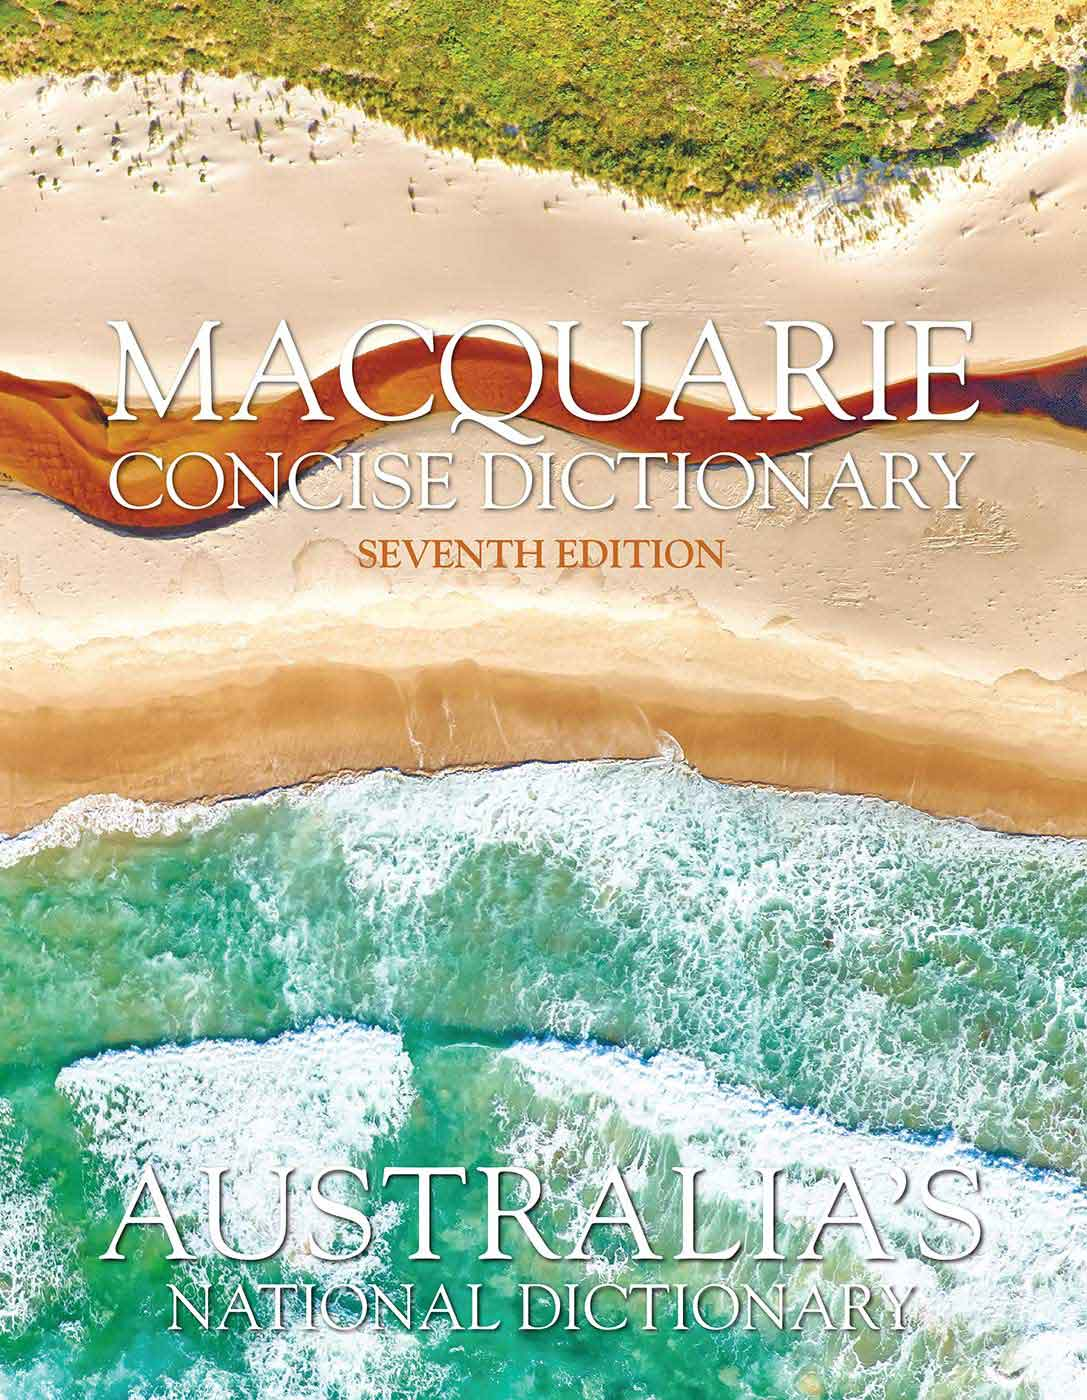 the cover of a Macquarie dictionary, seventh edition